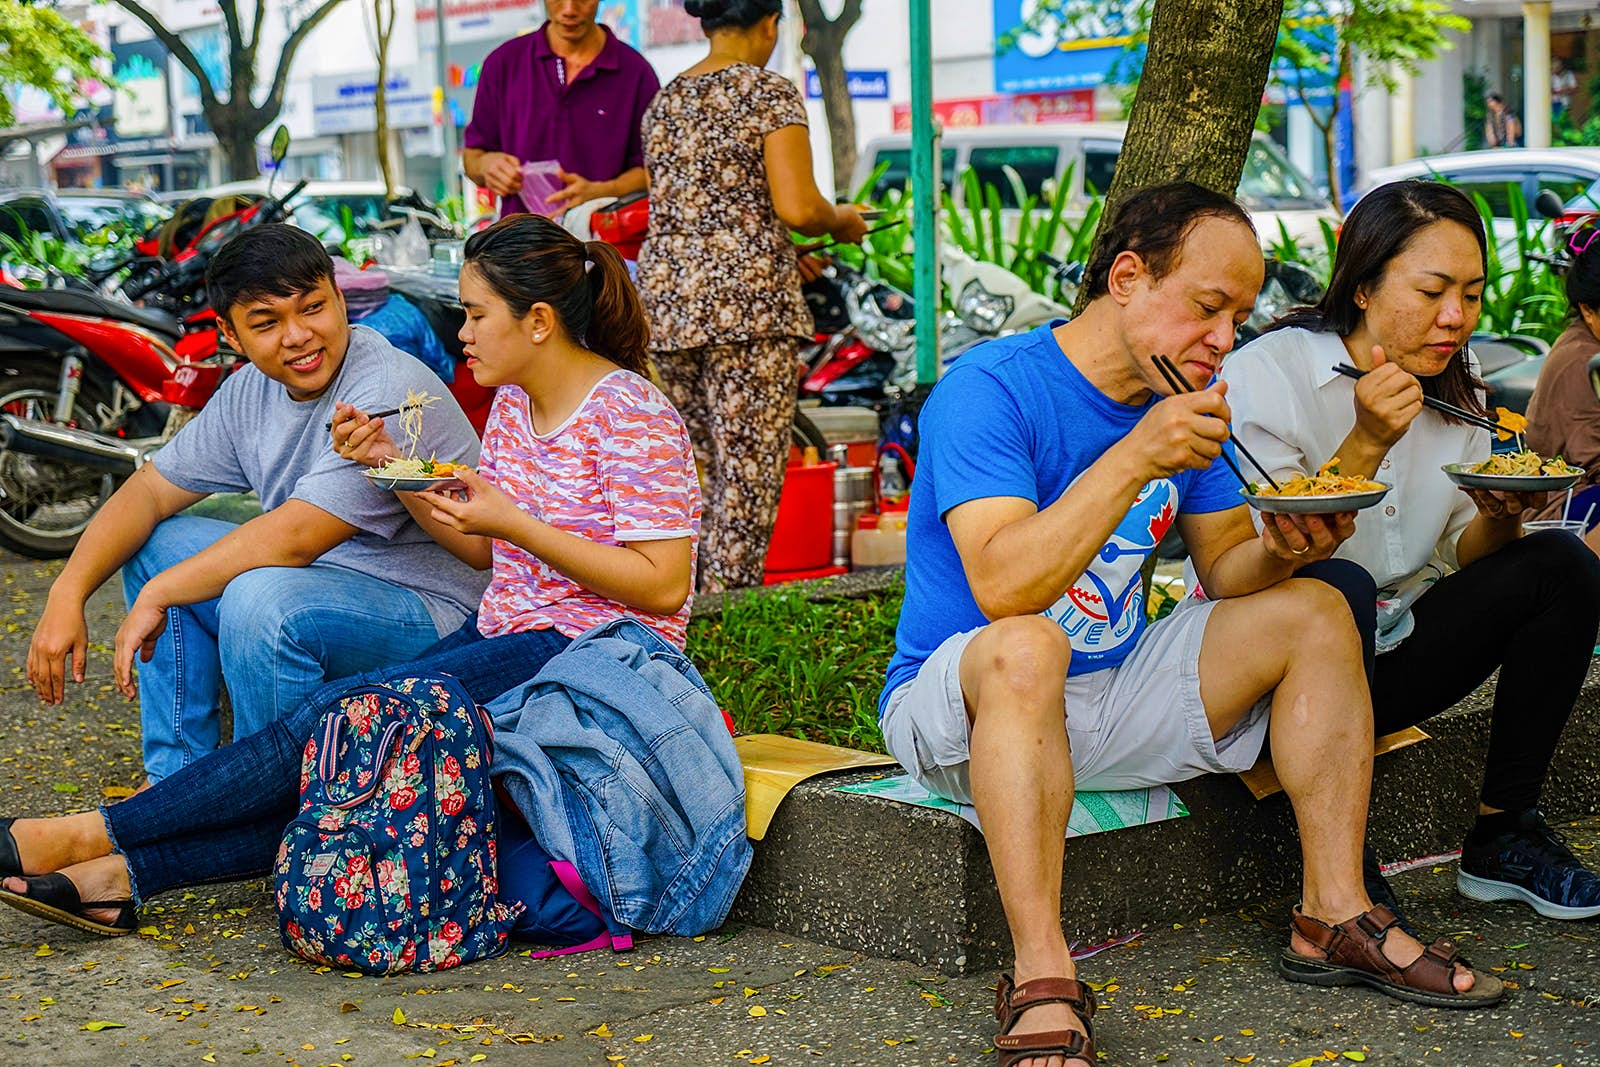 People sit on a curb eating plates of papaya salad © James Pham / Lonely Planet